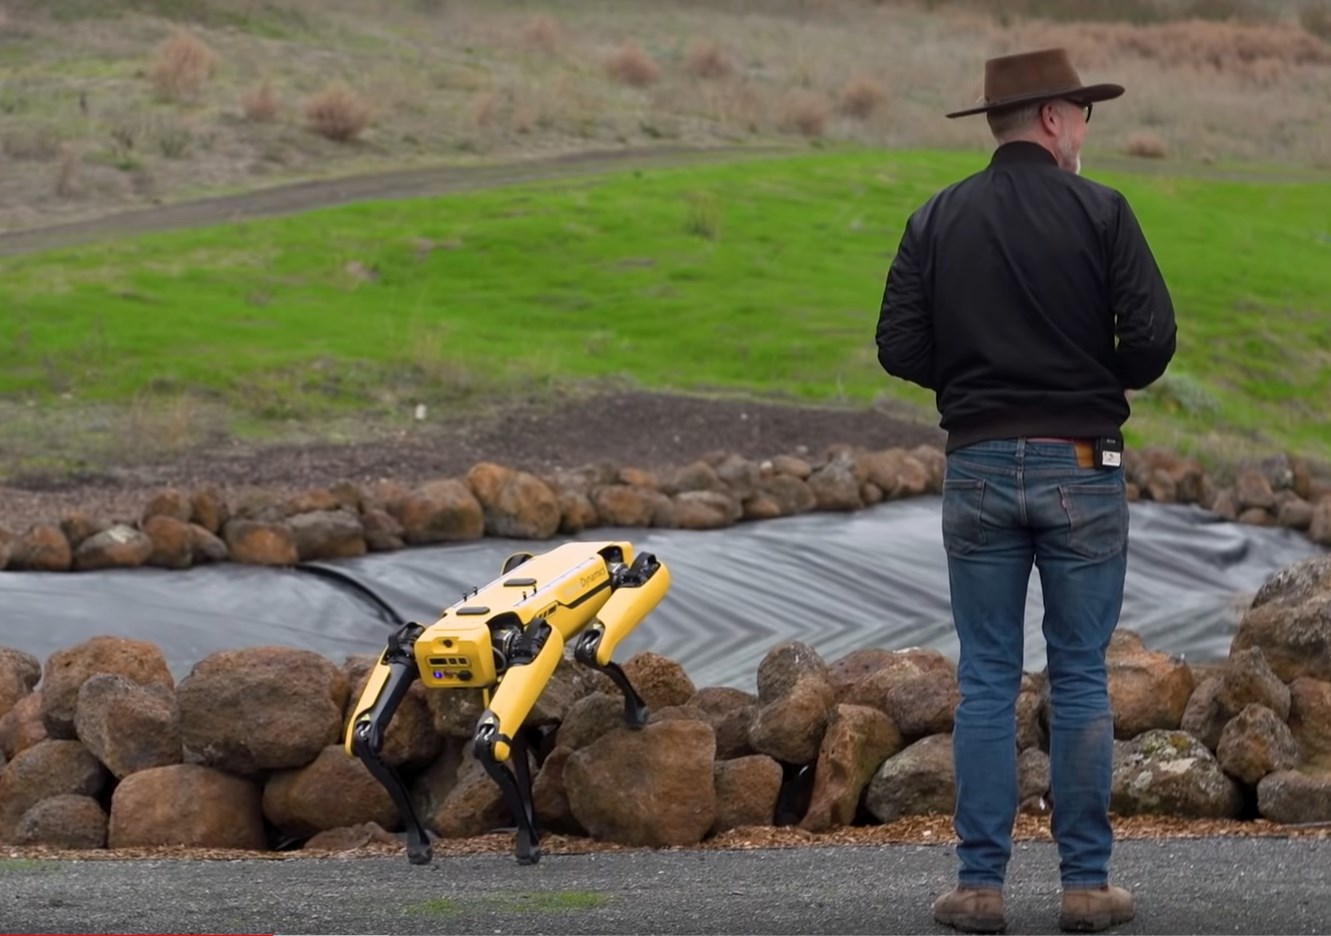 Adam Savage standing outside with the Boston Dynamics robot dog.